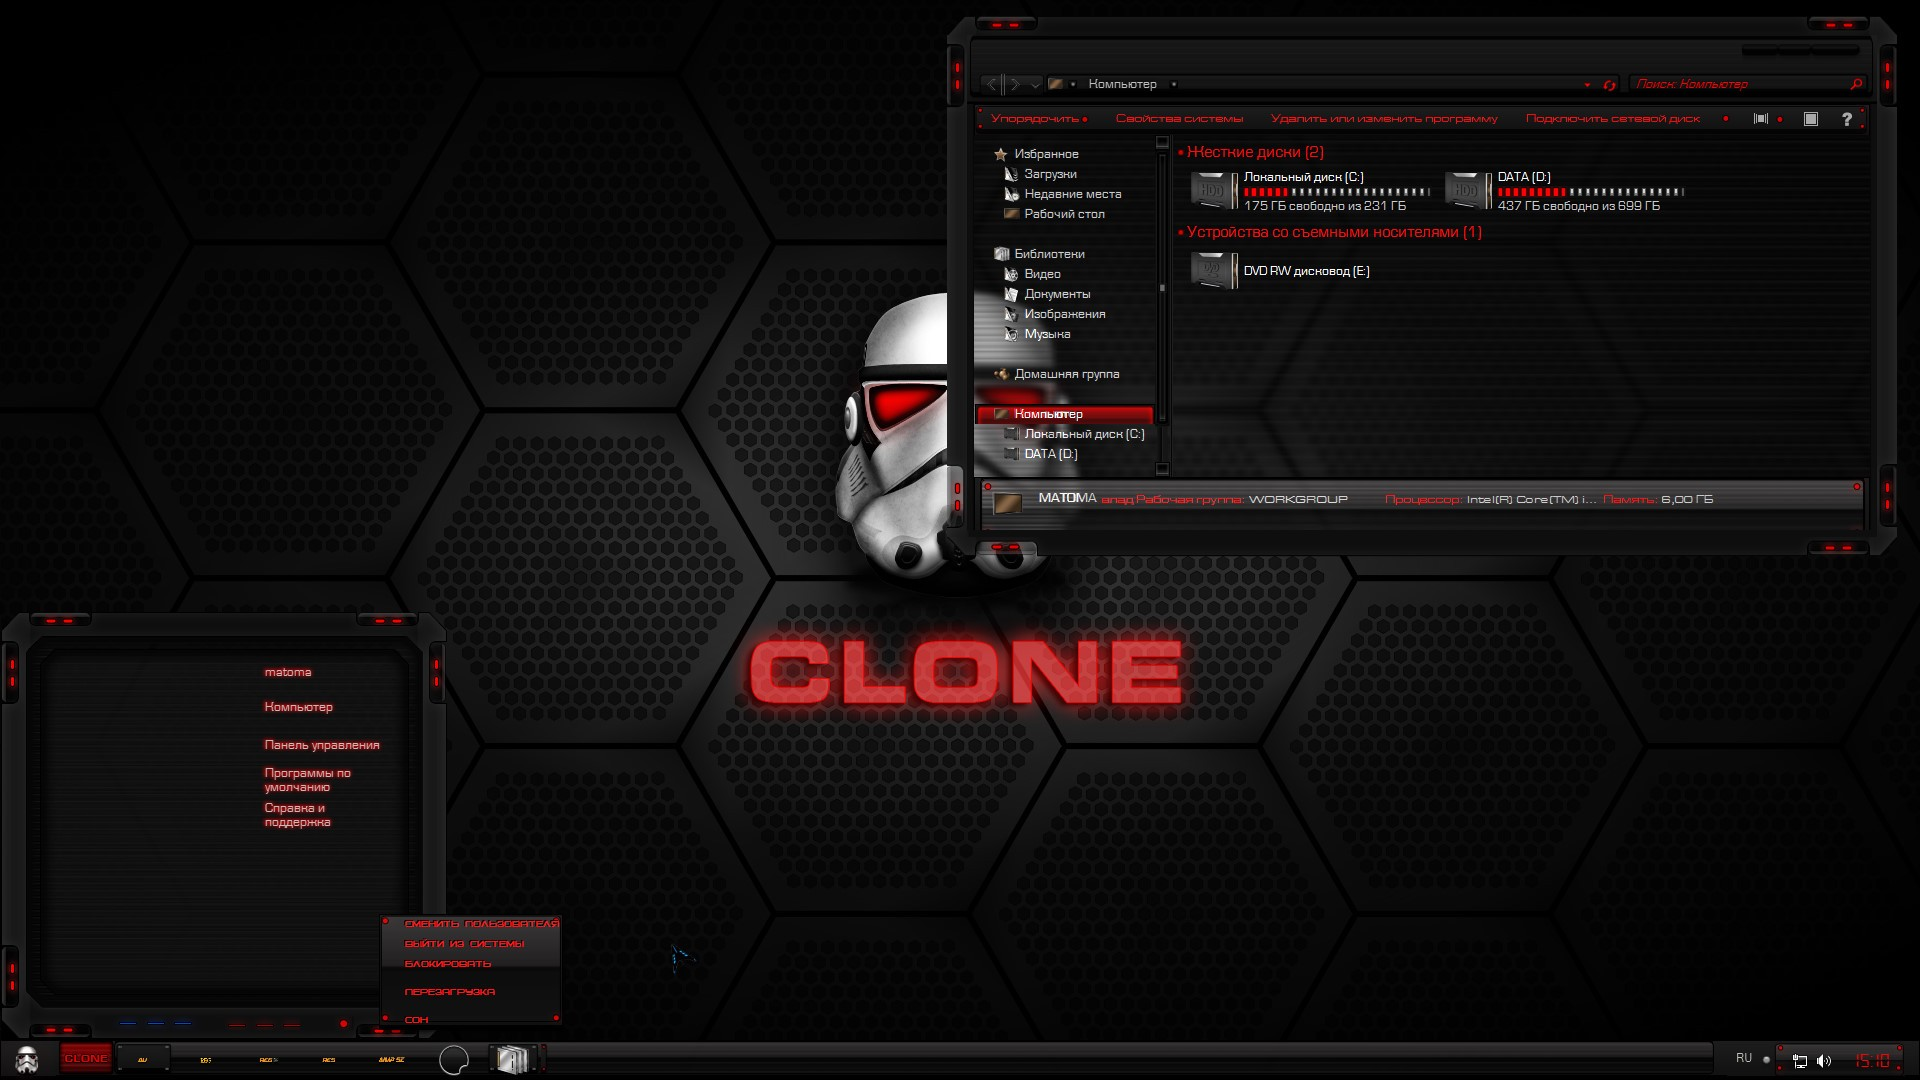 CLONE..BY_HELL-X (2)